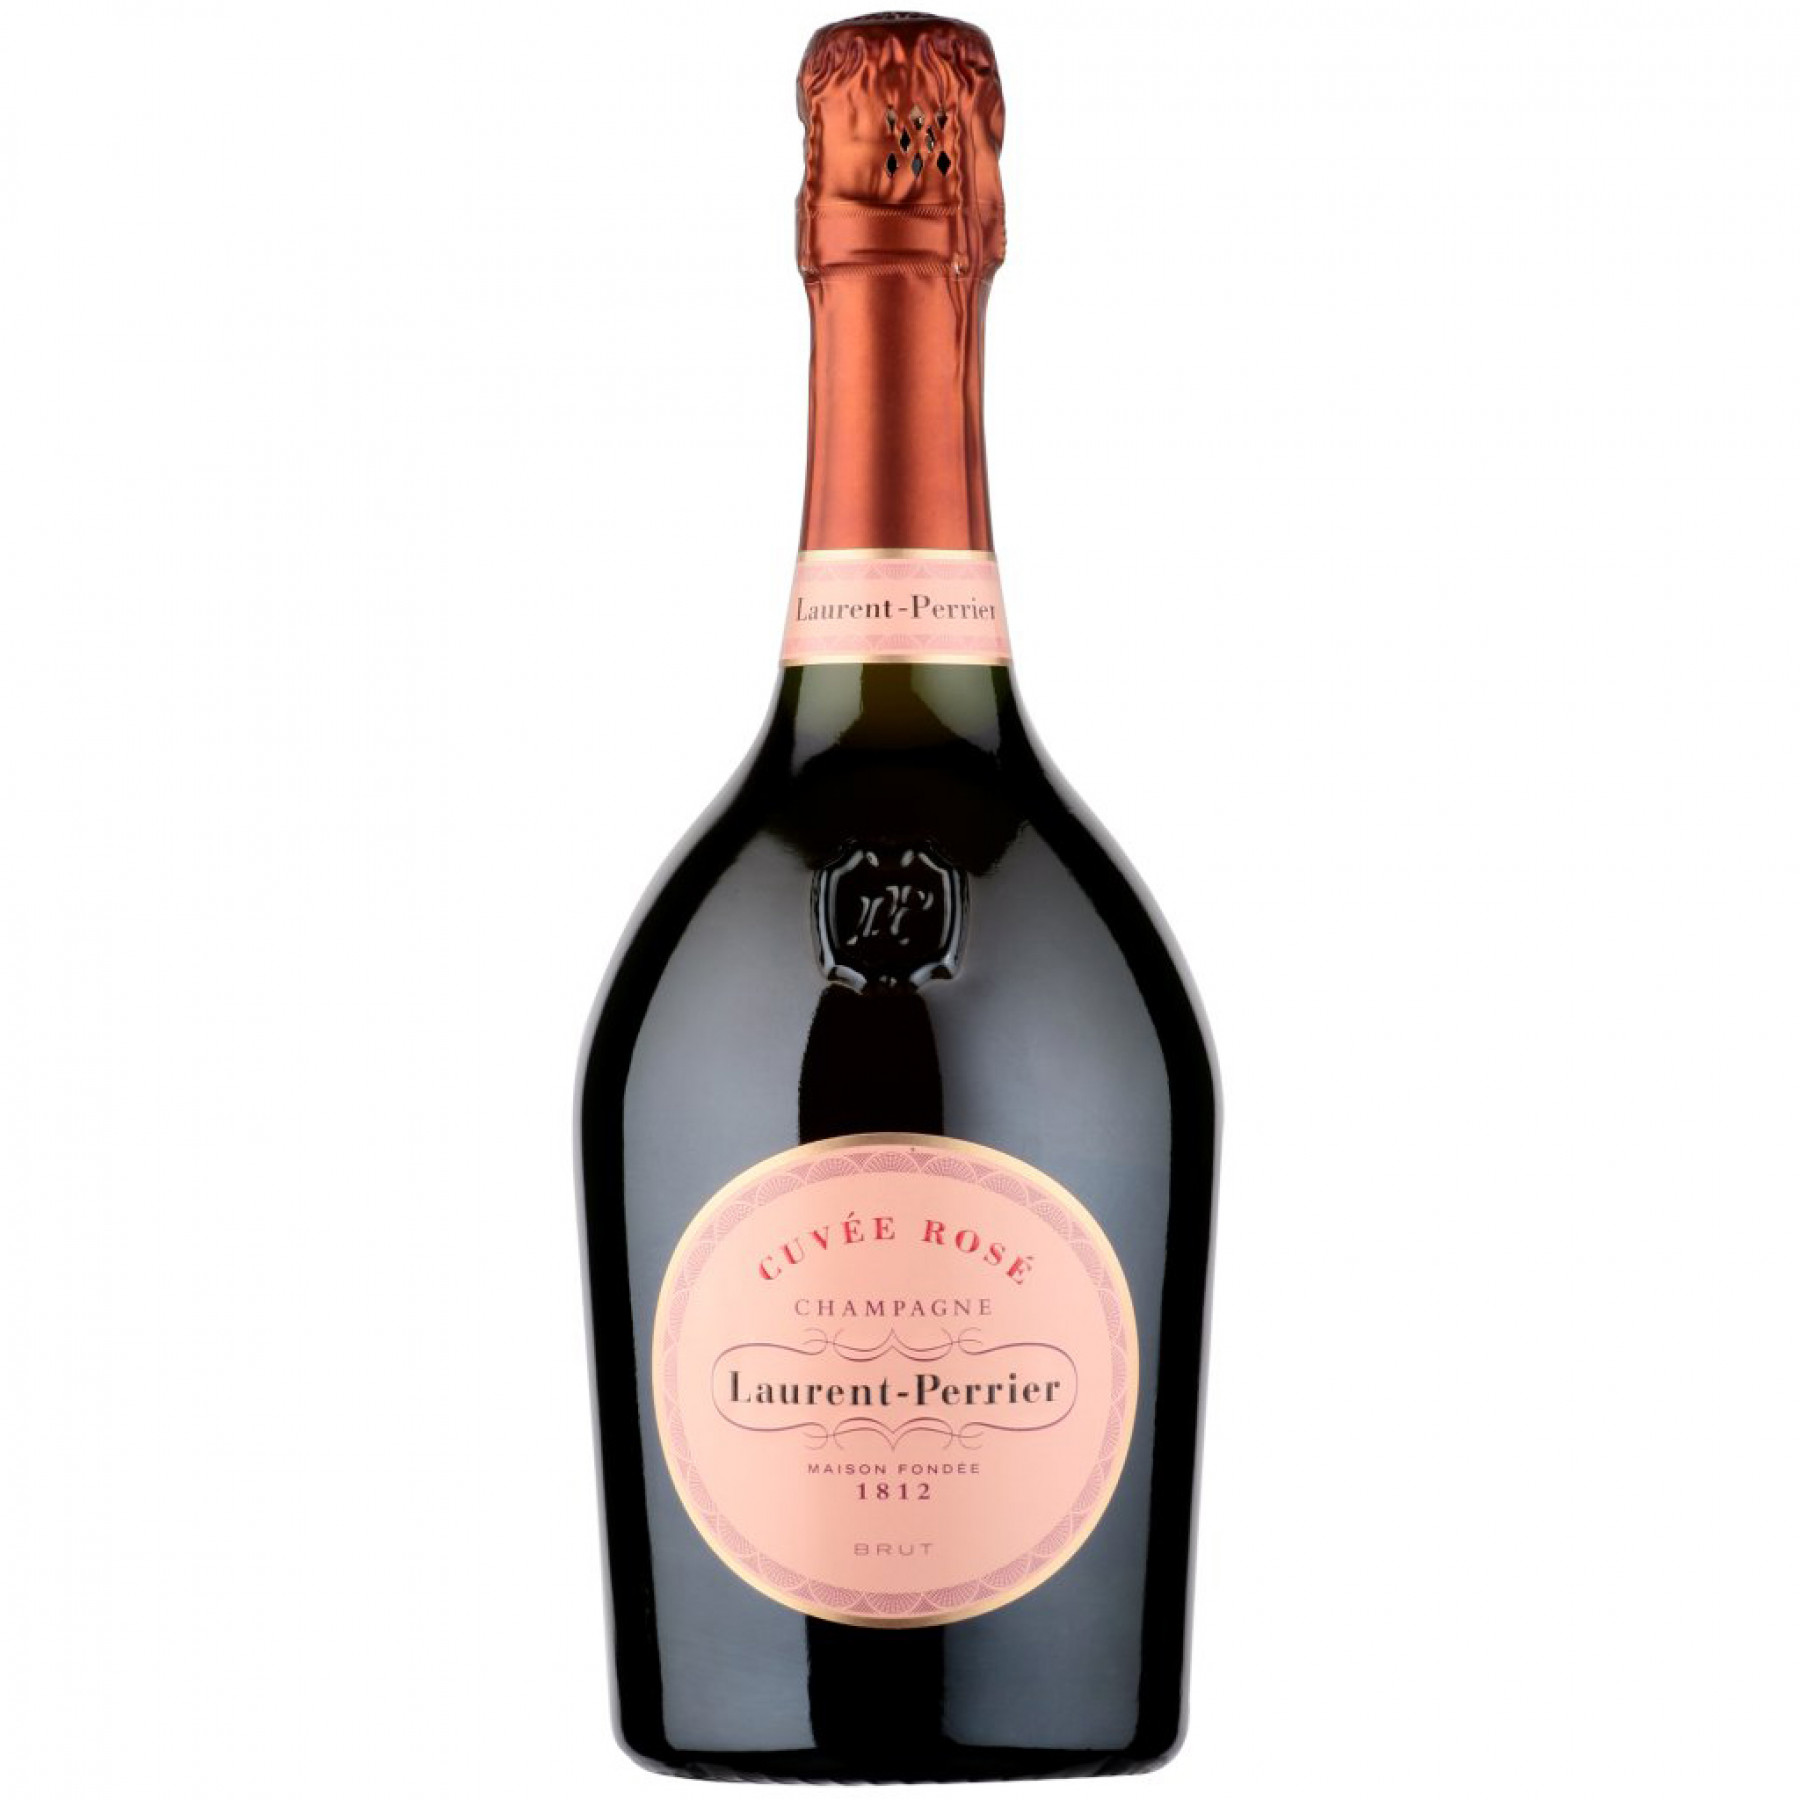 LAURENT PERRIER ROSE NV CHAMPAGNE 750ml